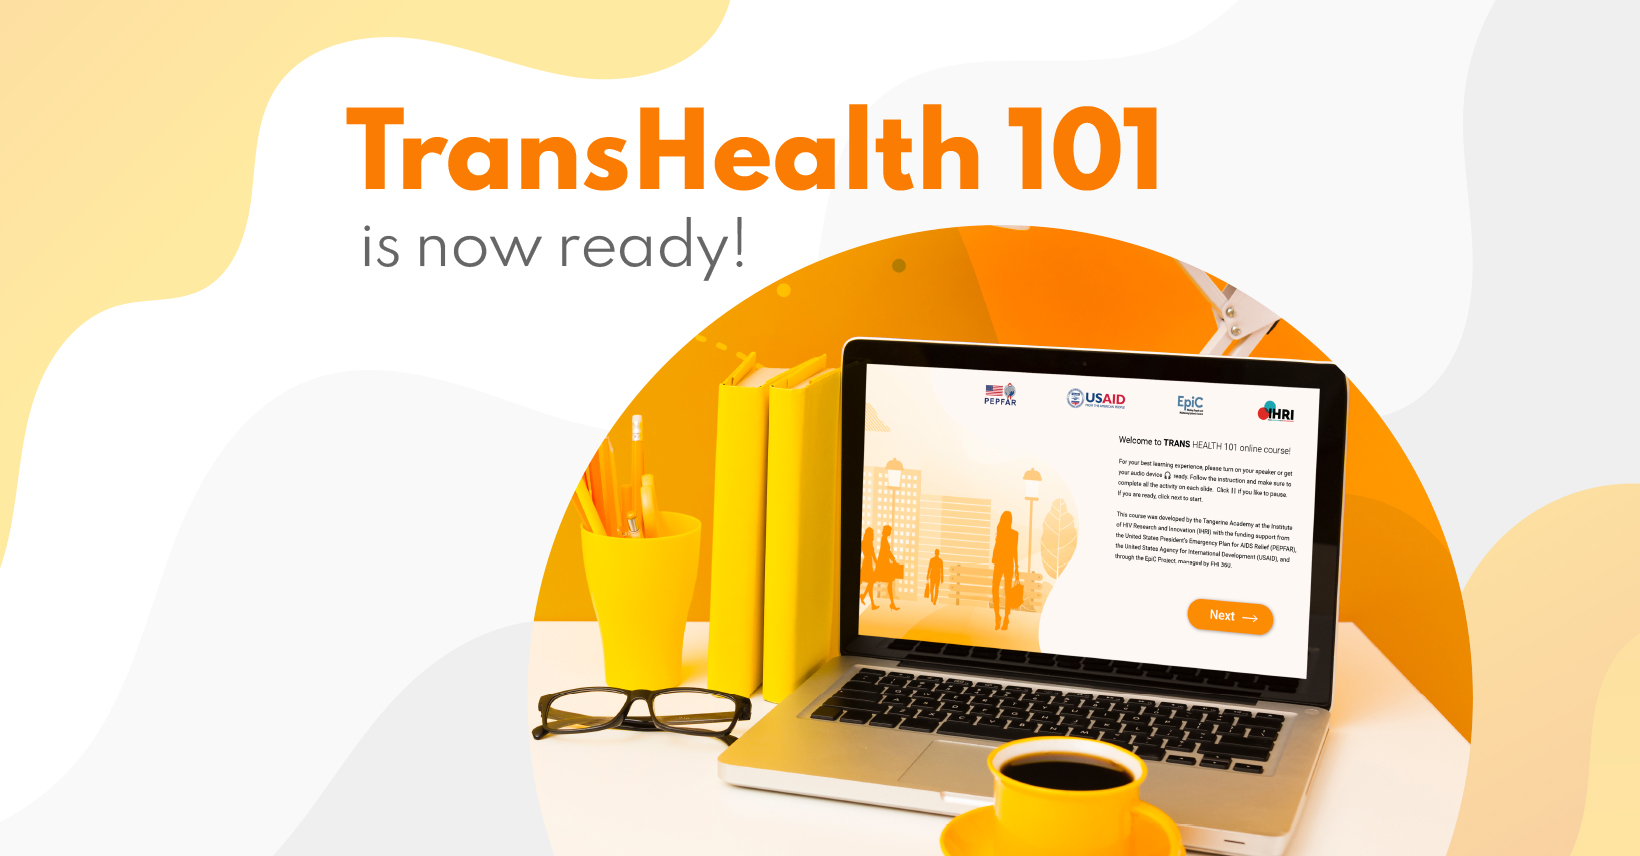 TransHealth 101 is now ready!